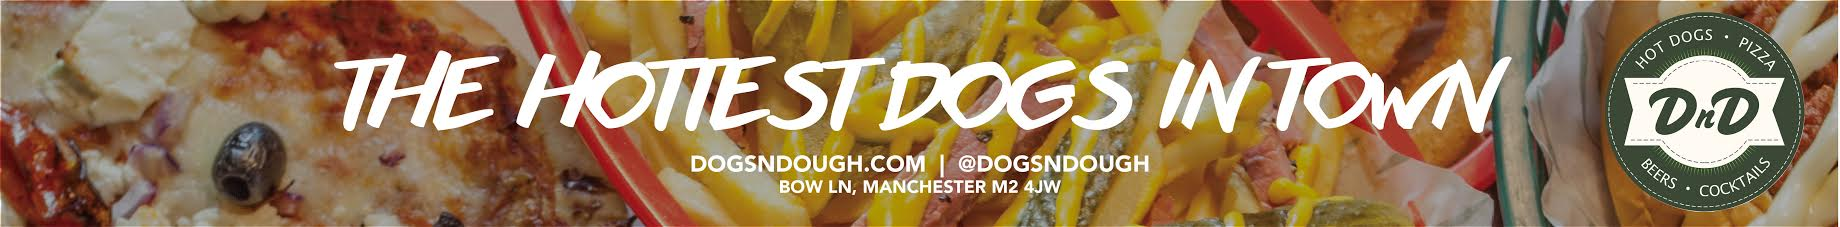 Dogs n Dough